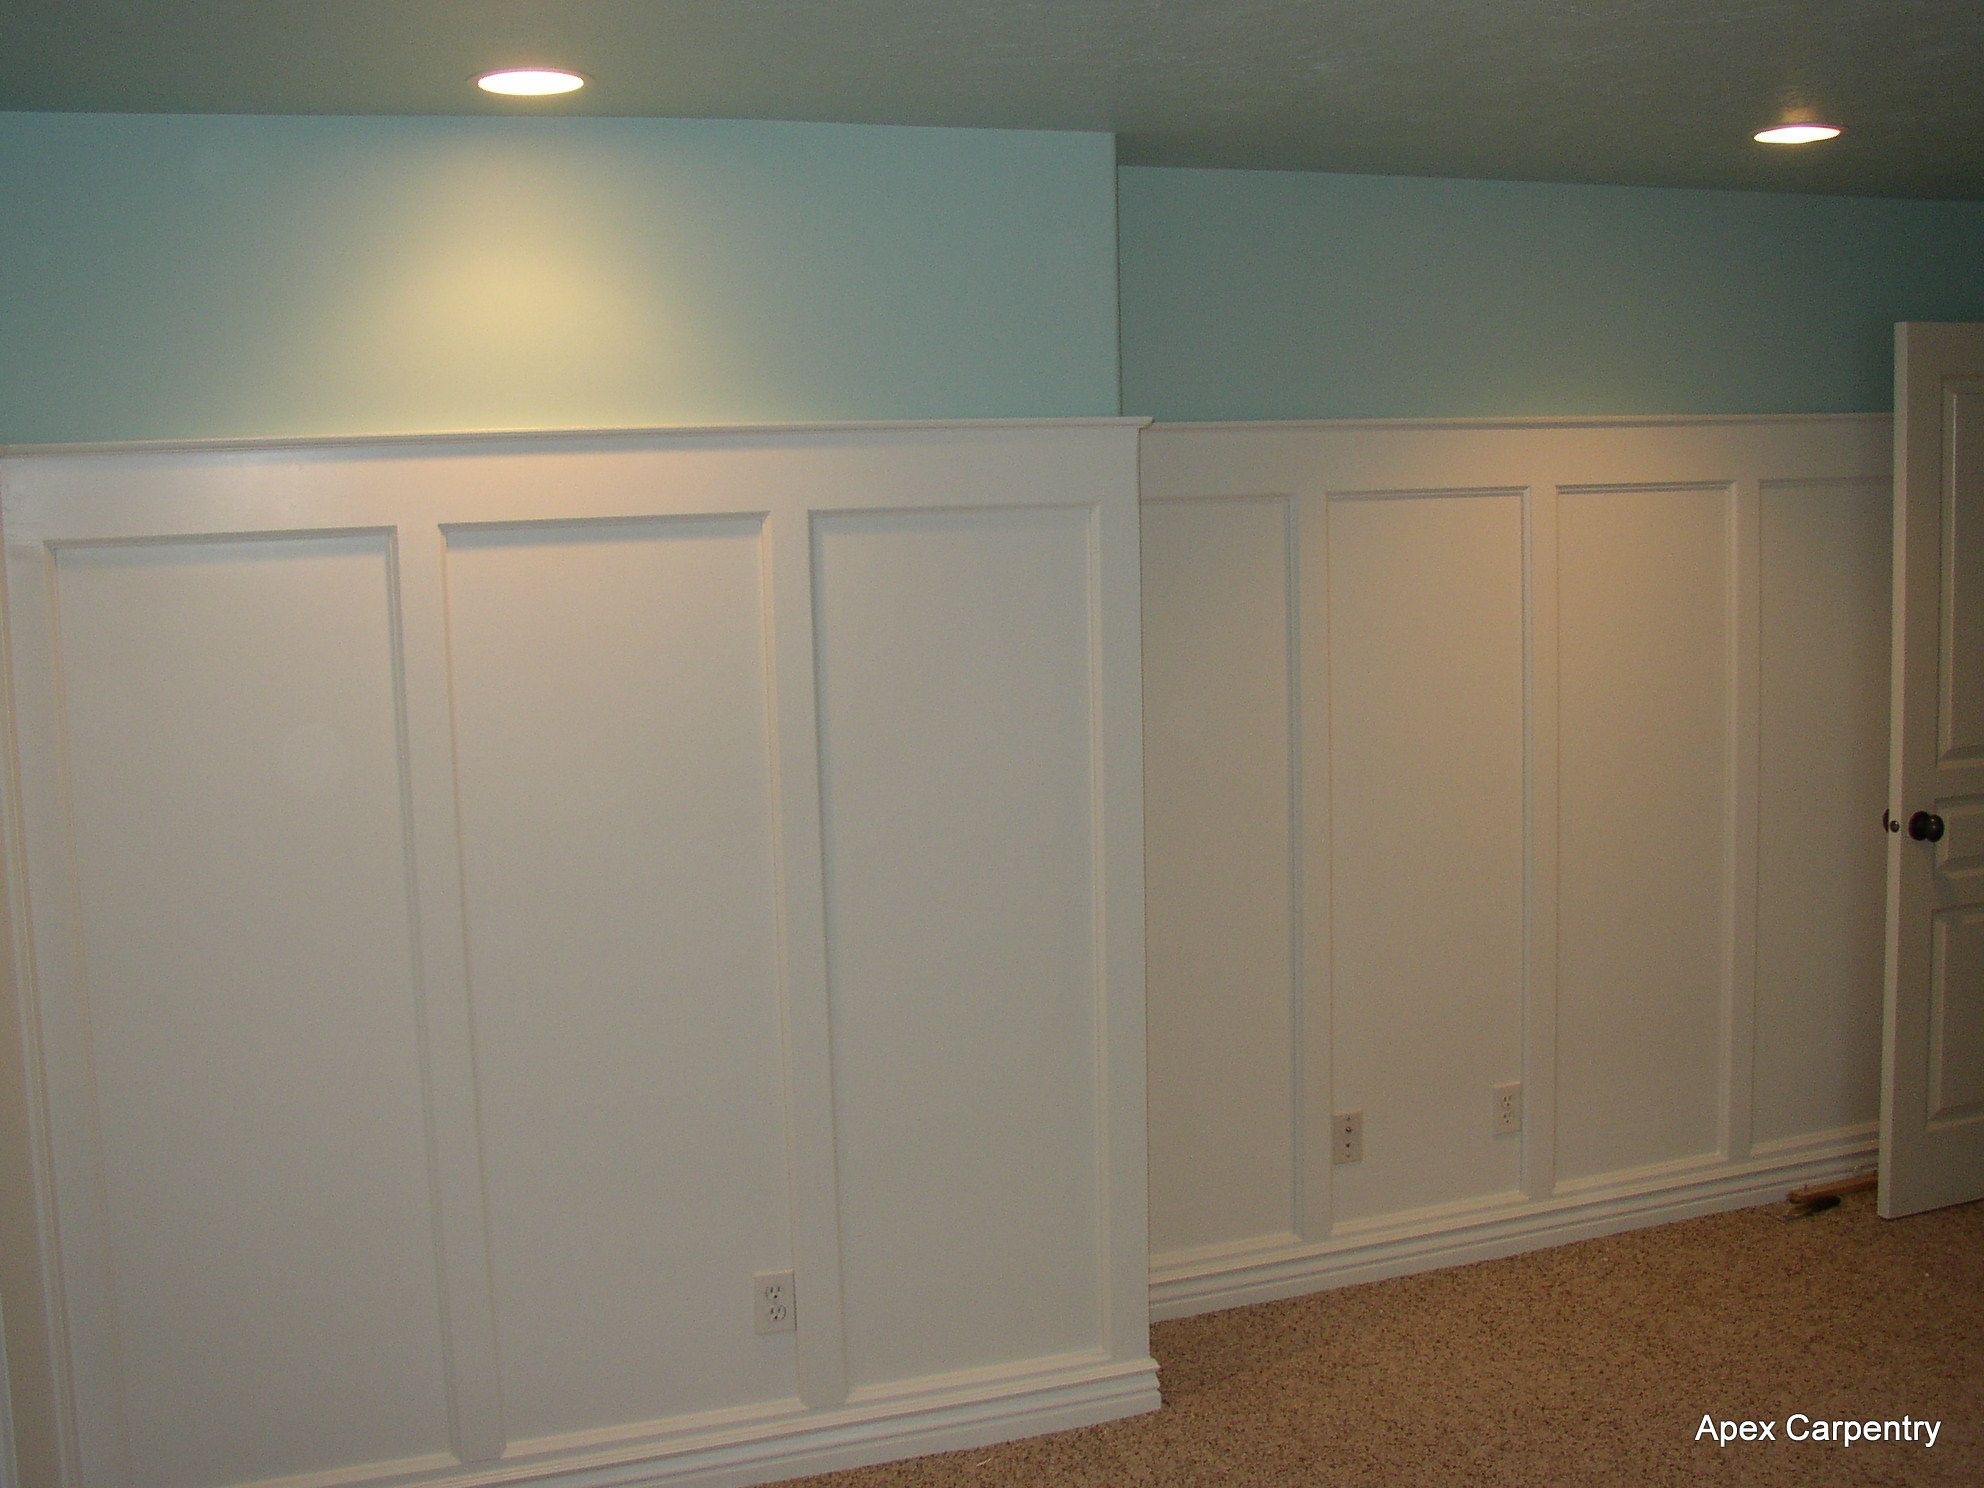 How to wainscoting ideas - Columbus Ohio Interior Decorator Colleen Lora Clark Explains The Different Styles Of Wainscoting And How To Incorporate Them Into Your Home For Added